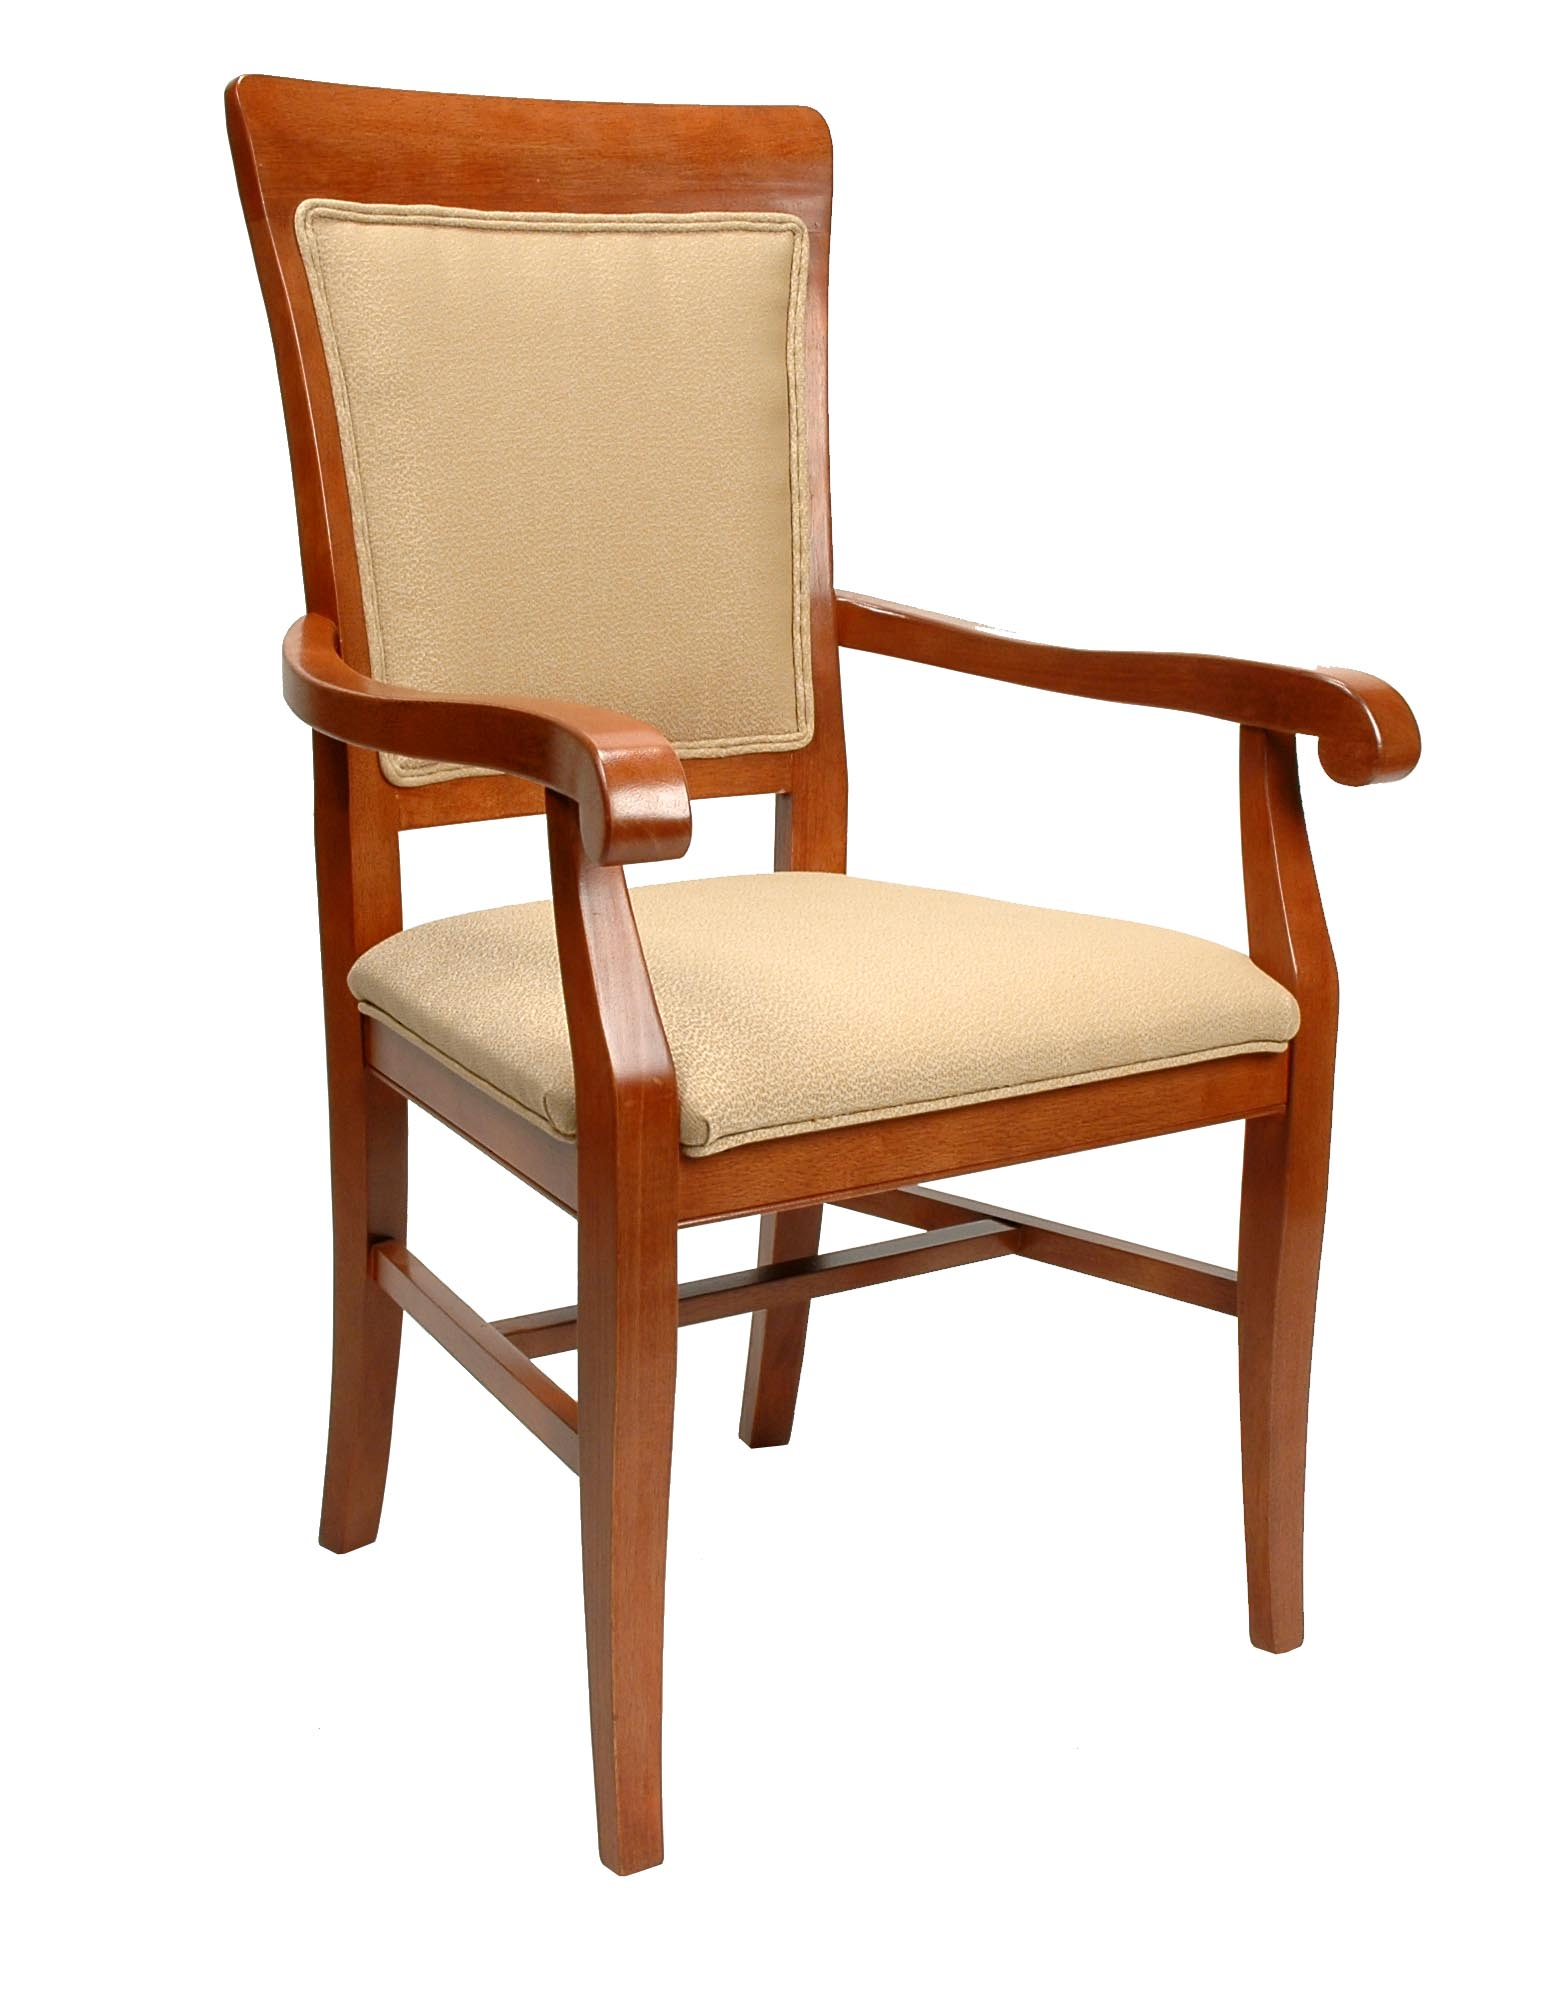 Contemporary Curved Arm Chair